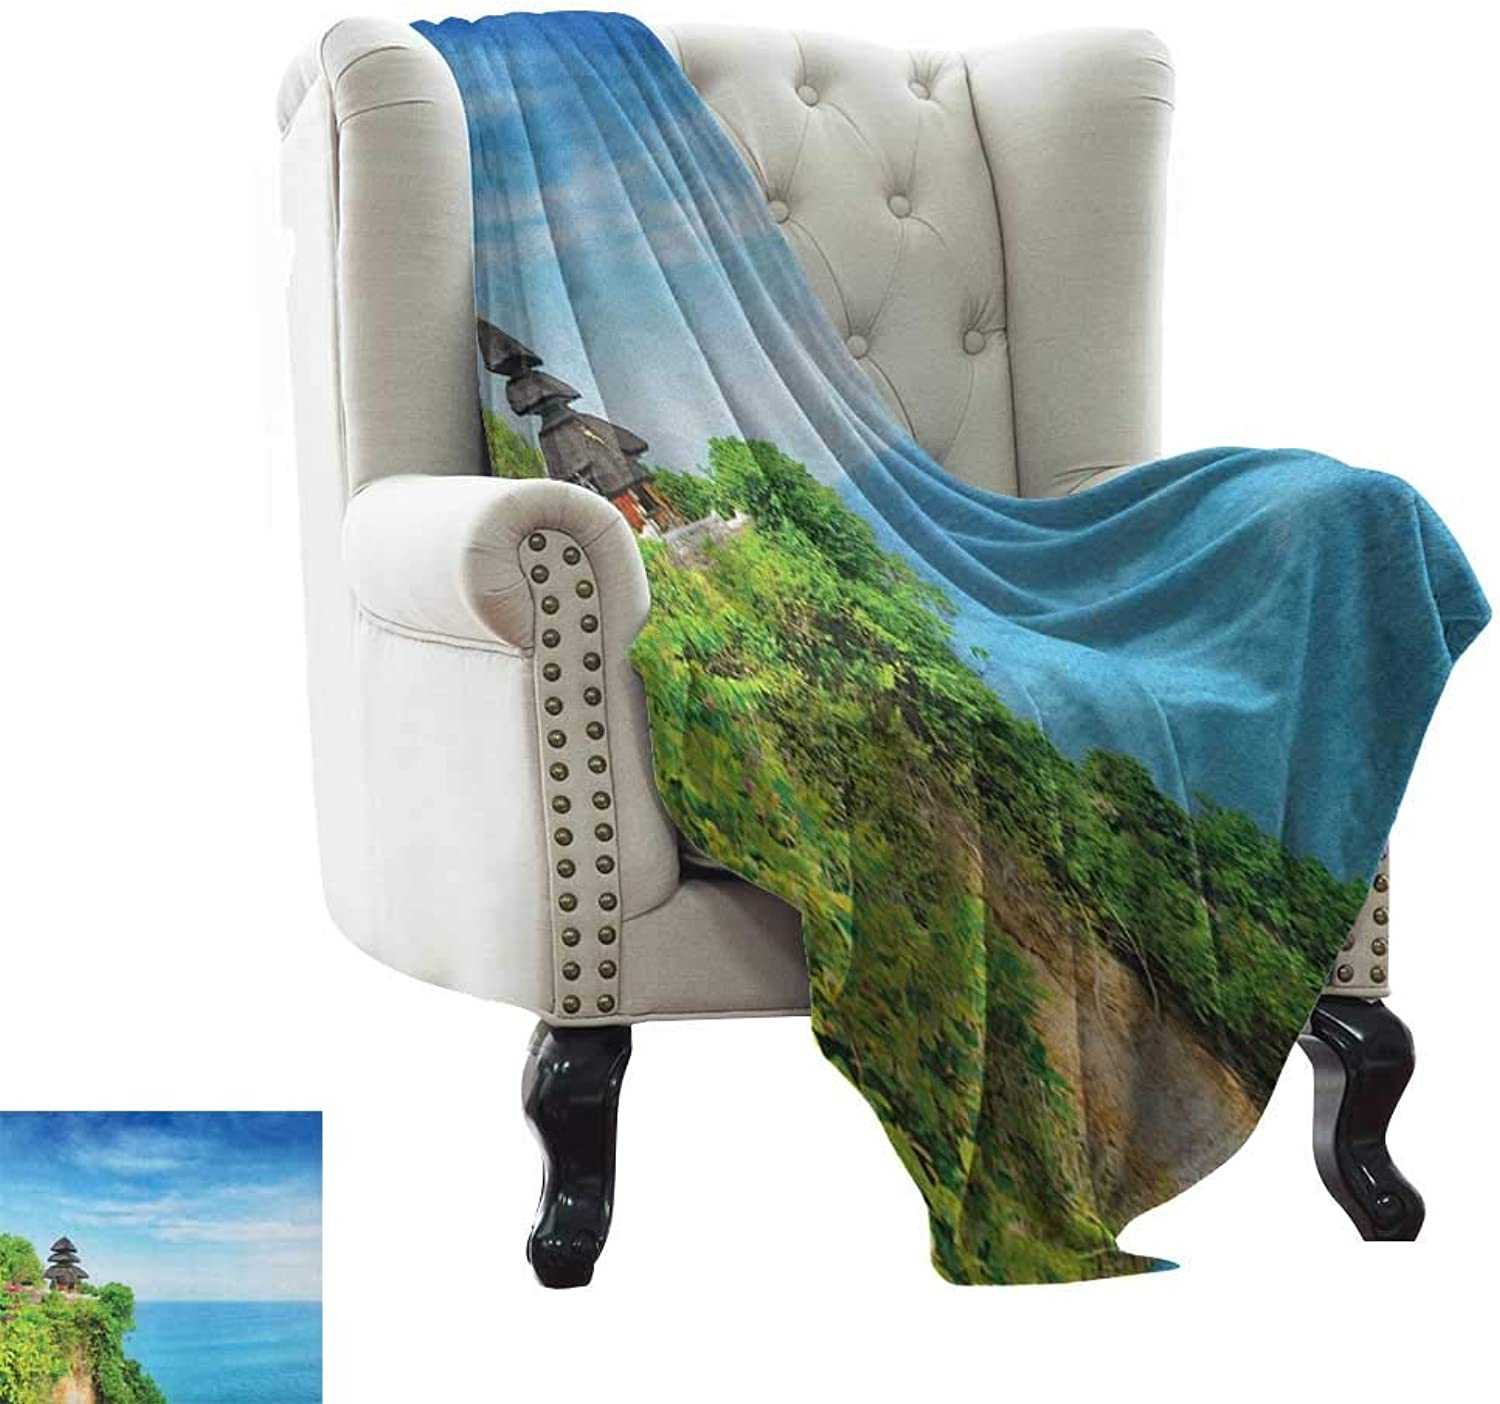 Fluffy Blanket Balinese,Uluwatu Temple Bali Indonesia Seacoast Cliff Horizon Summer Seascape Nature Print, bluee Green Weighted for Adults Kids, Better Deeper Sleep 60 x62